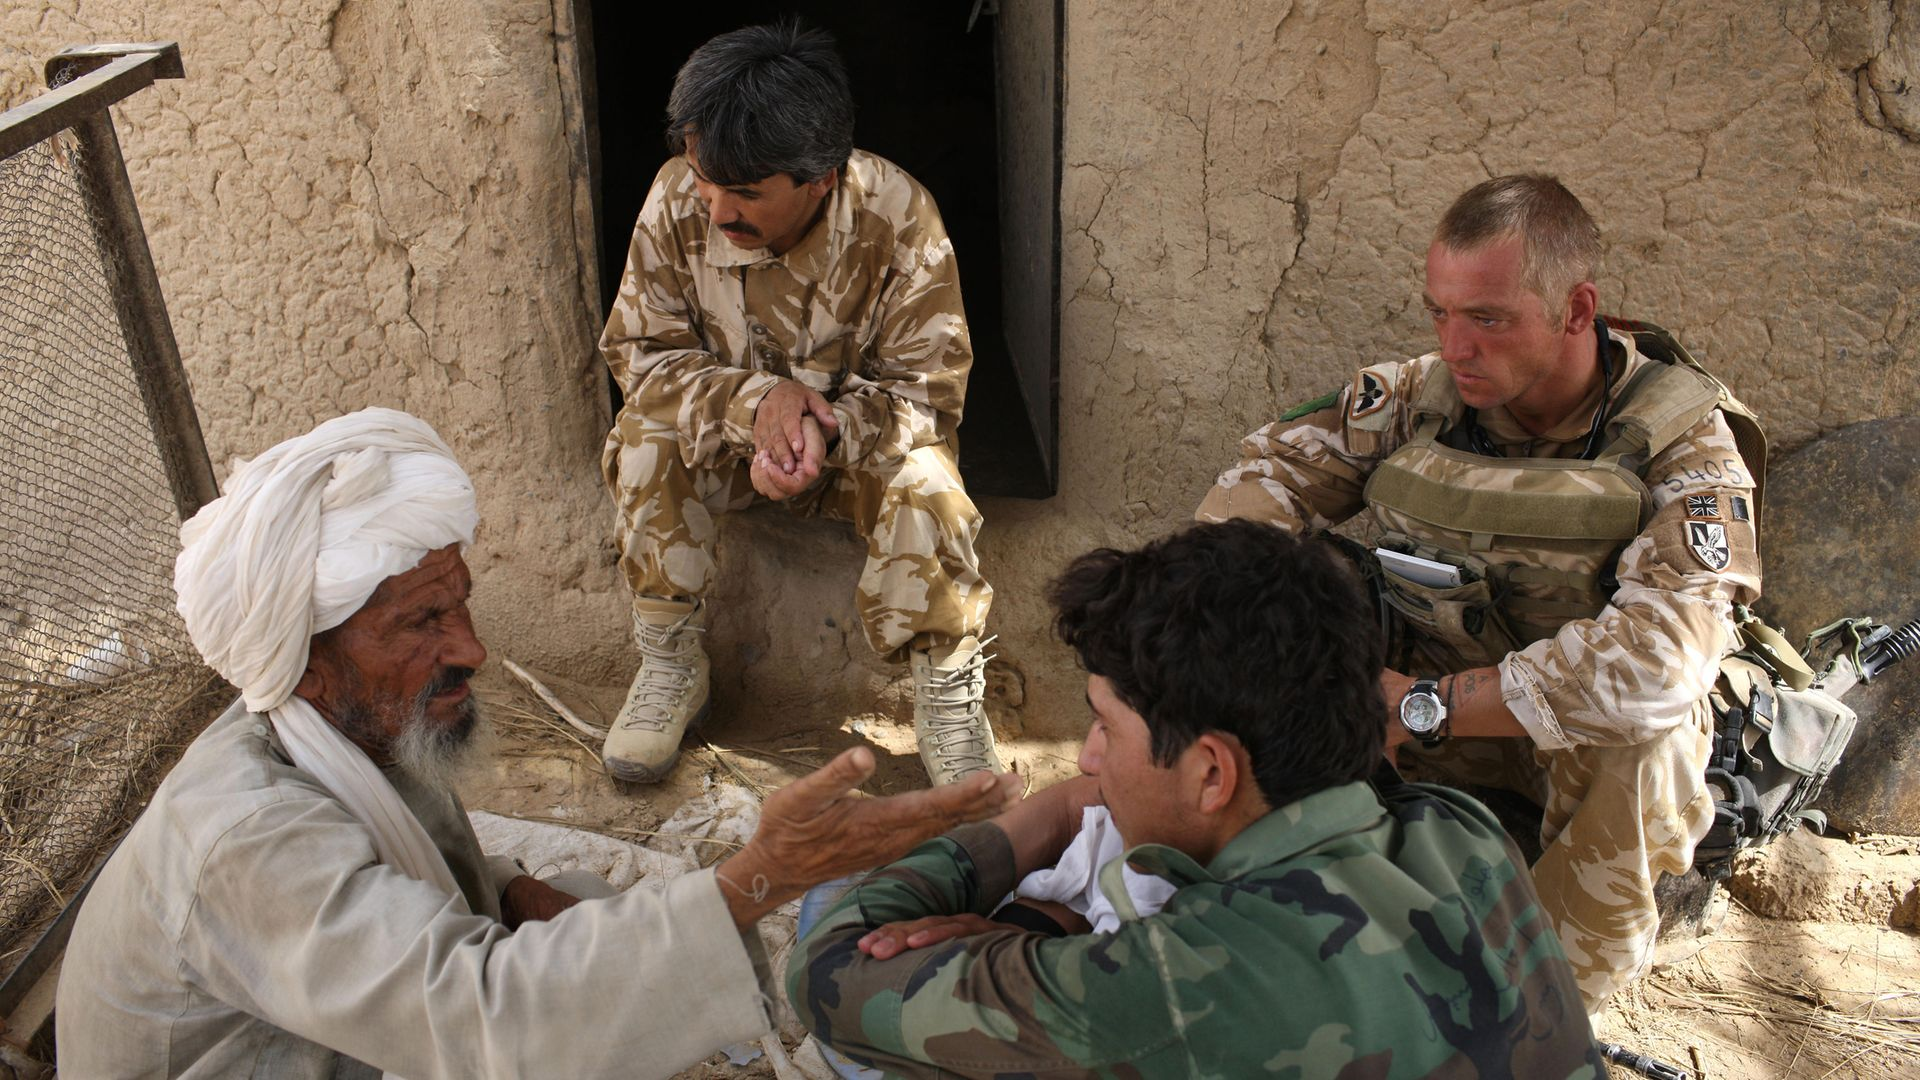 A British solider and his interpreters question an Afghan in Kandahar in 2008 - Credit: Getty Images